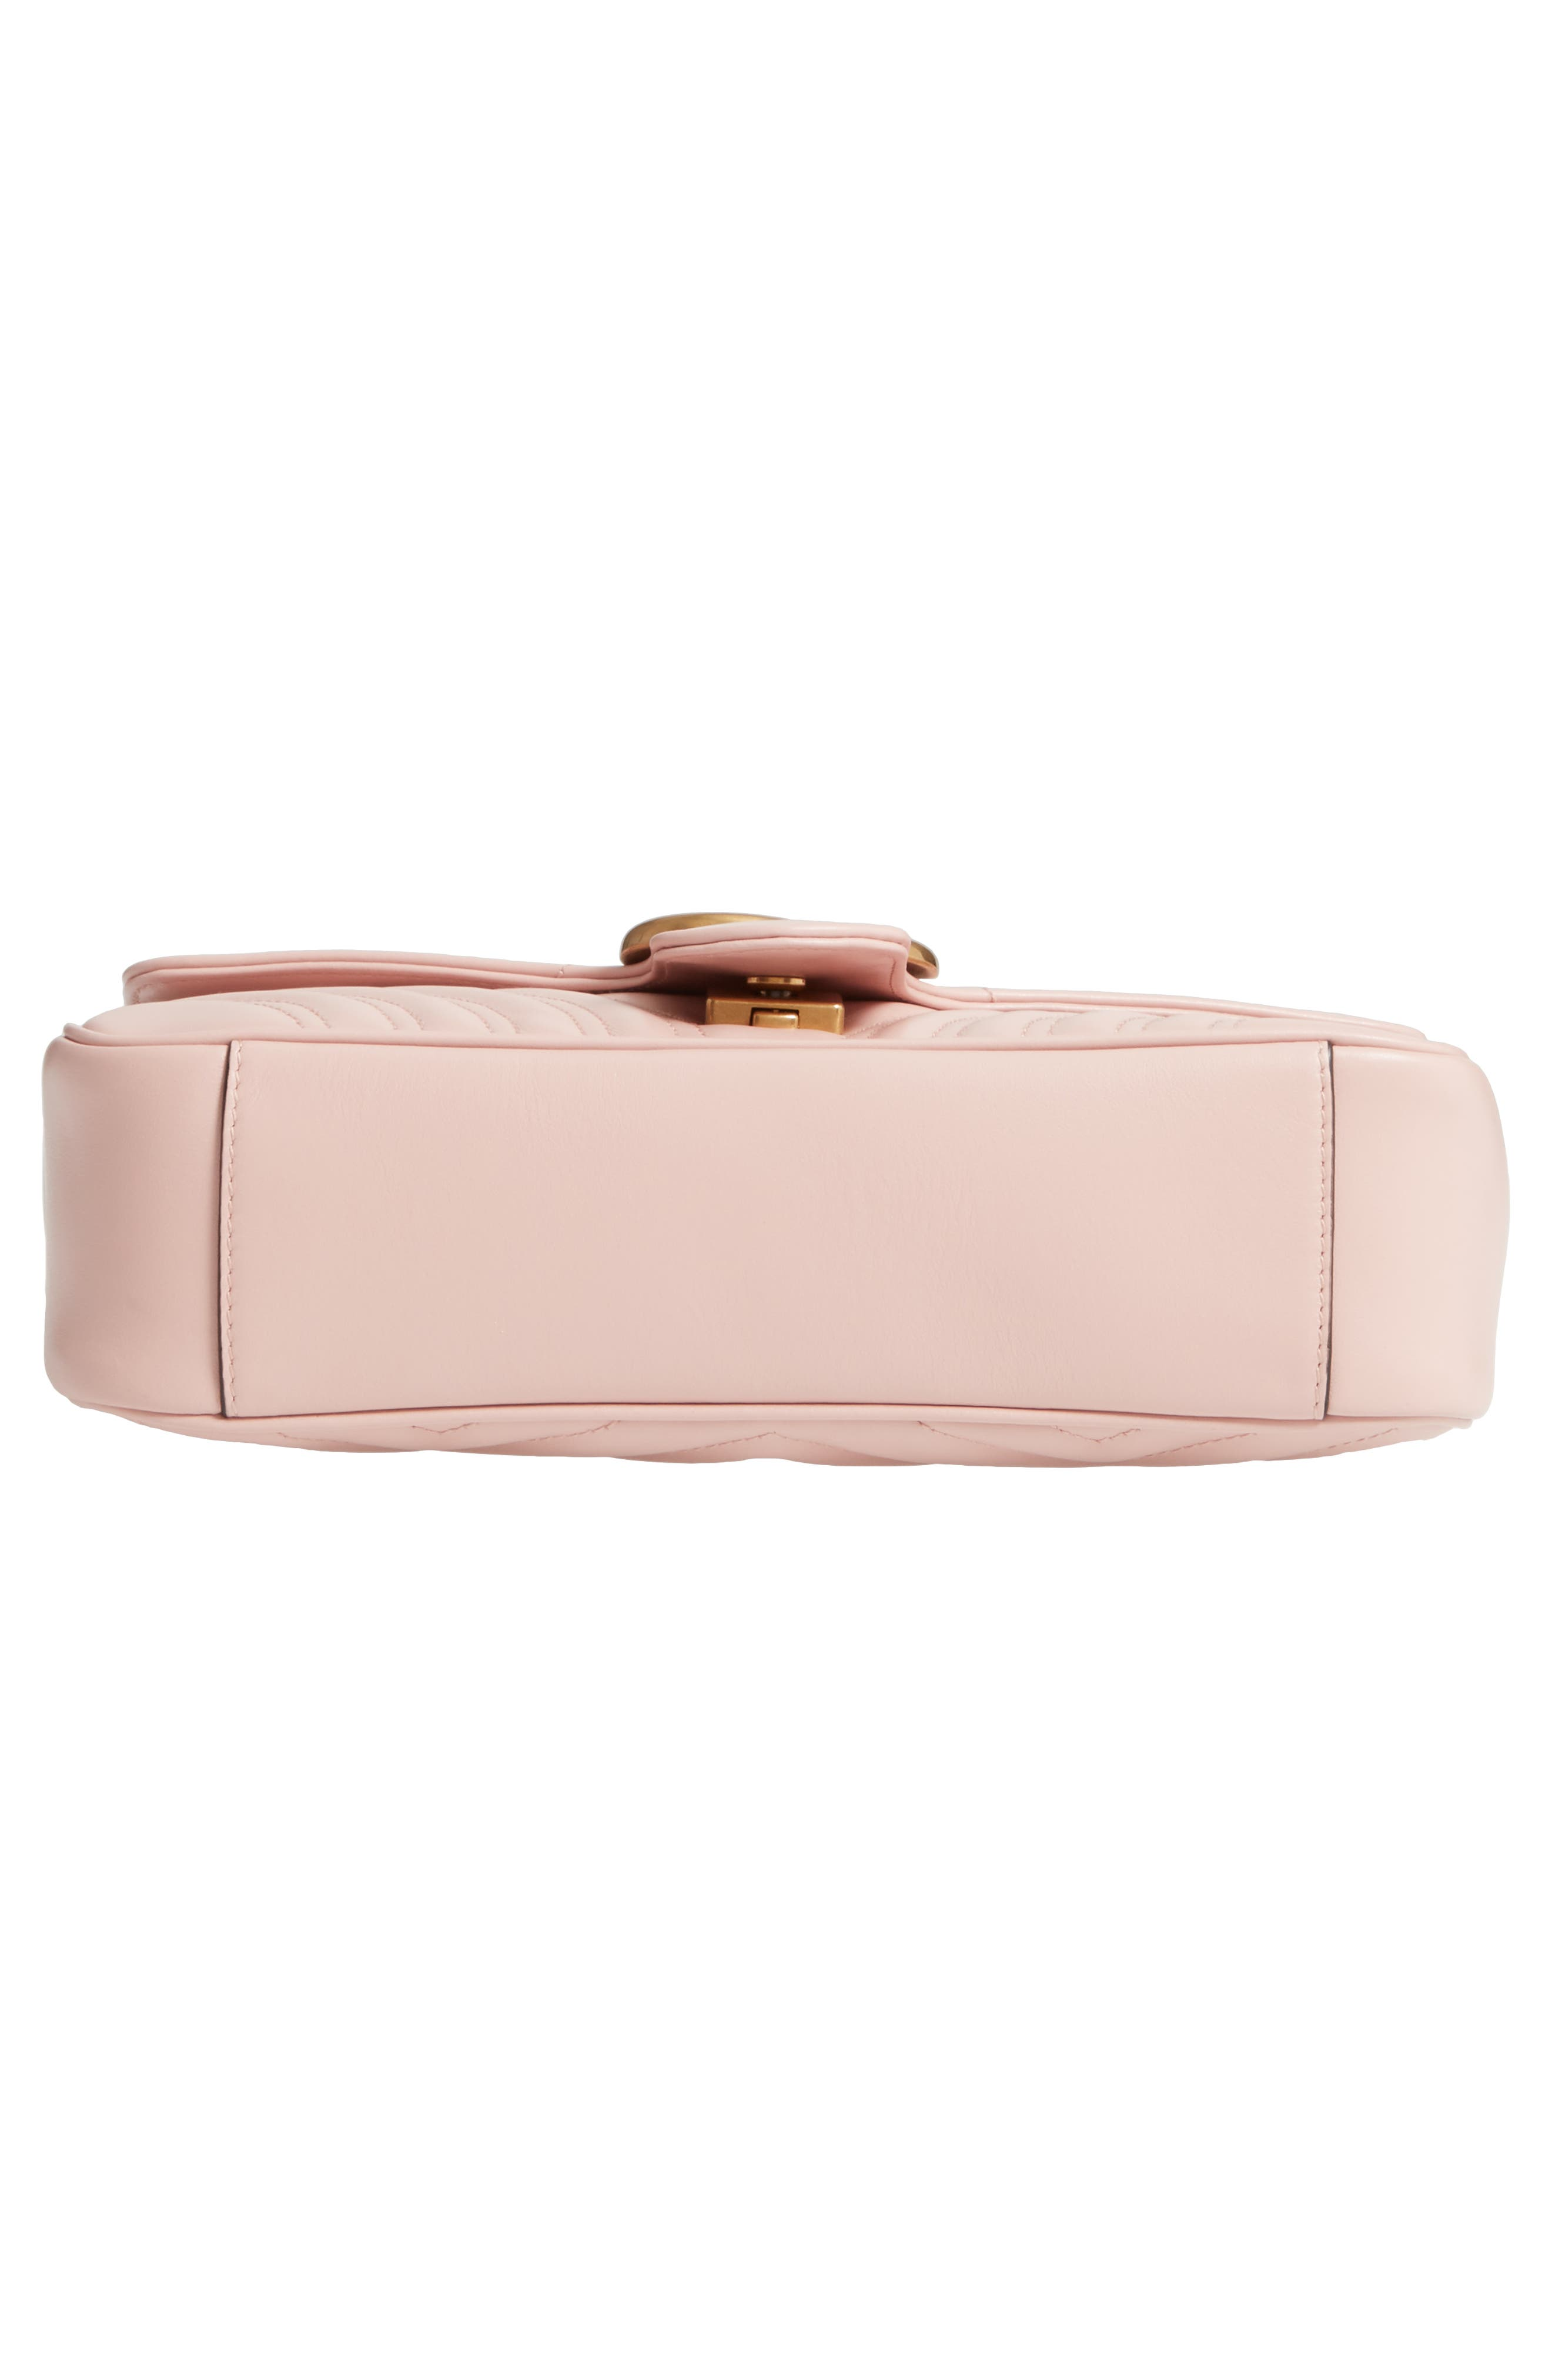 ,                             Small GG Marmont 2.0 Matelassé Leather Shoulder Bag,                             Alternate thumbnail 6, color,                             PERFECT PINK/ PERFECT PINK